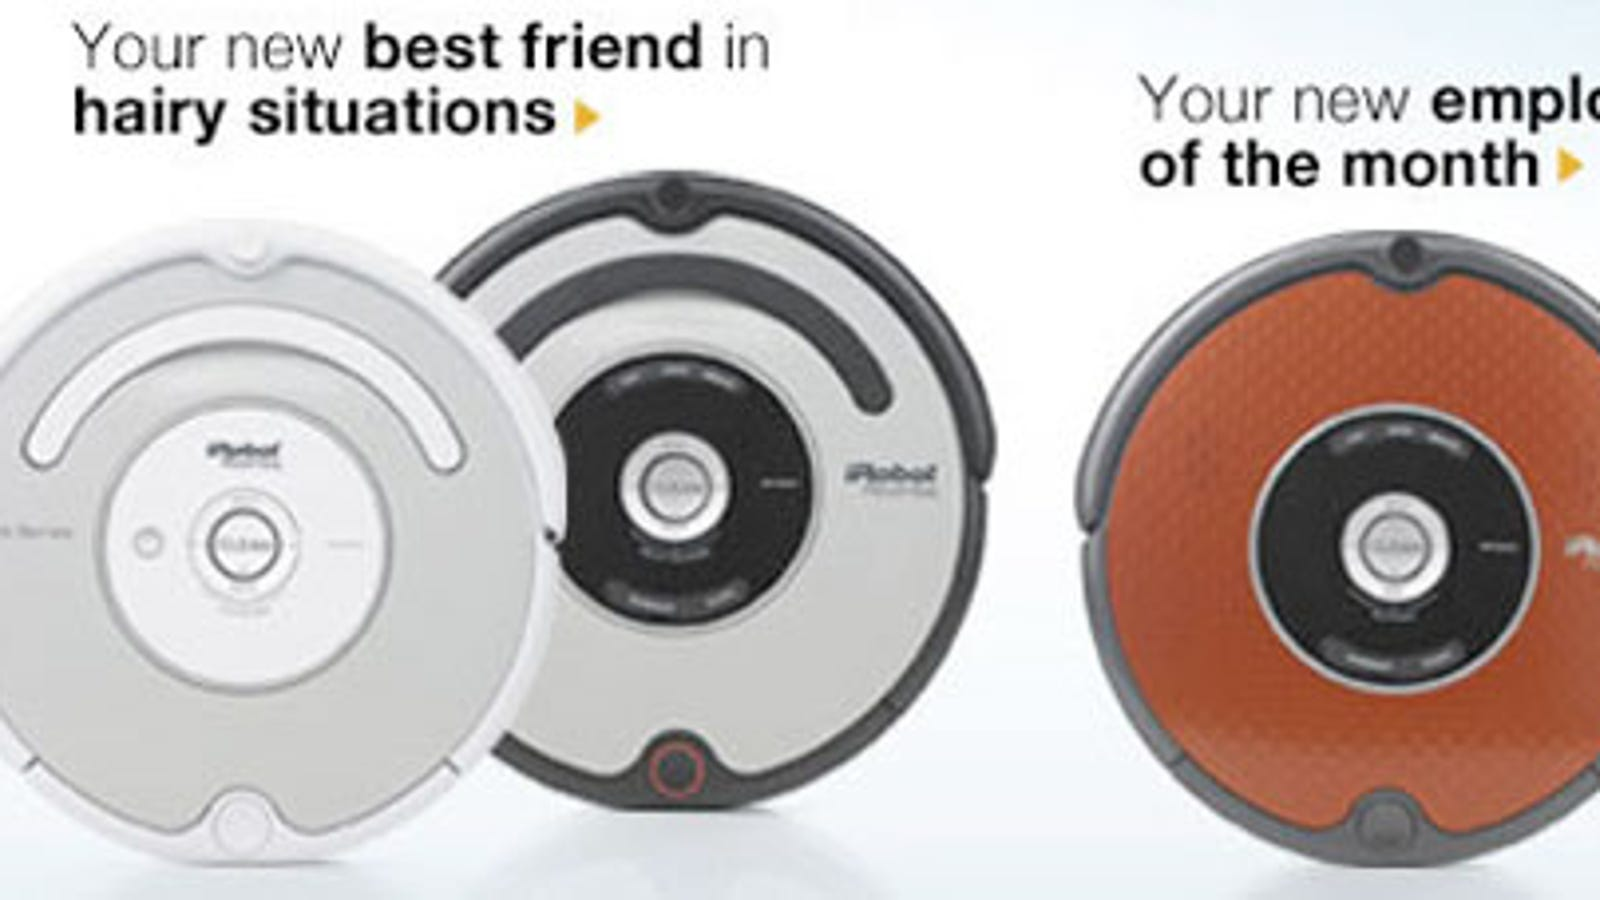 New iRobot Roombas Aimed at Pets and Very Dirty People